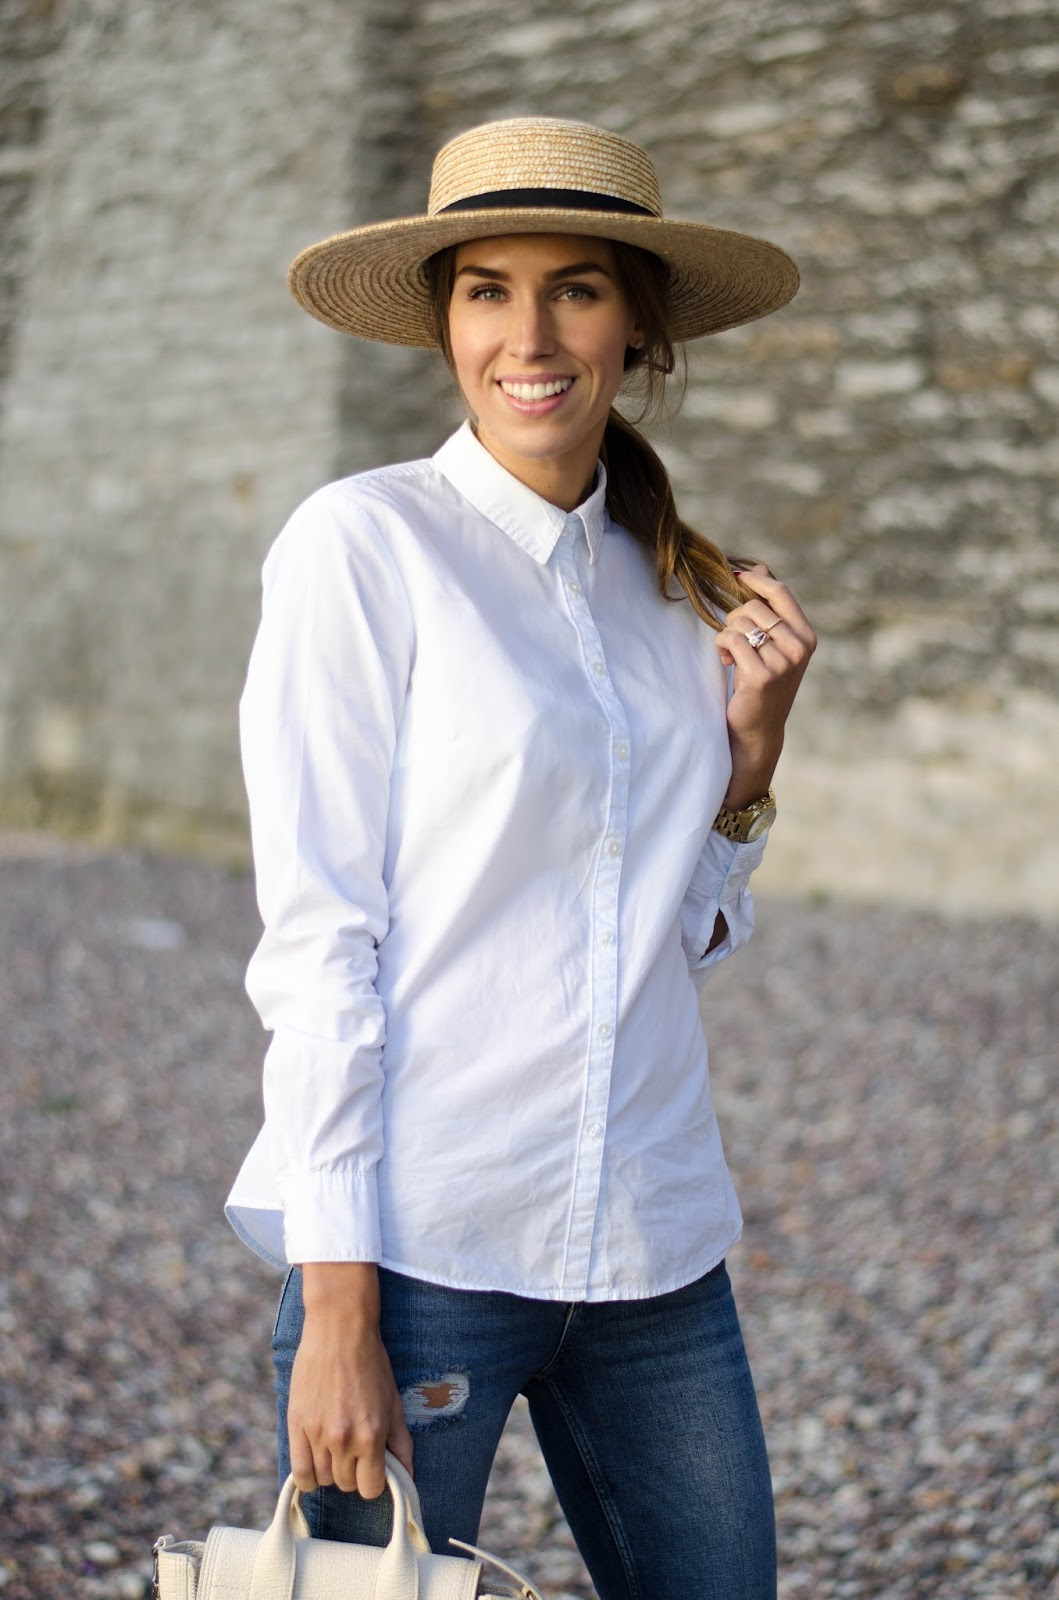 kristjaana mere straw hat outfit